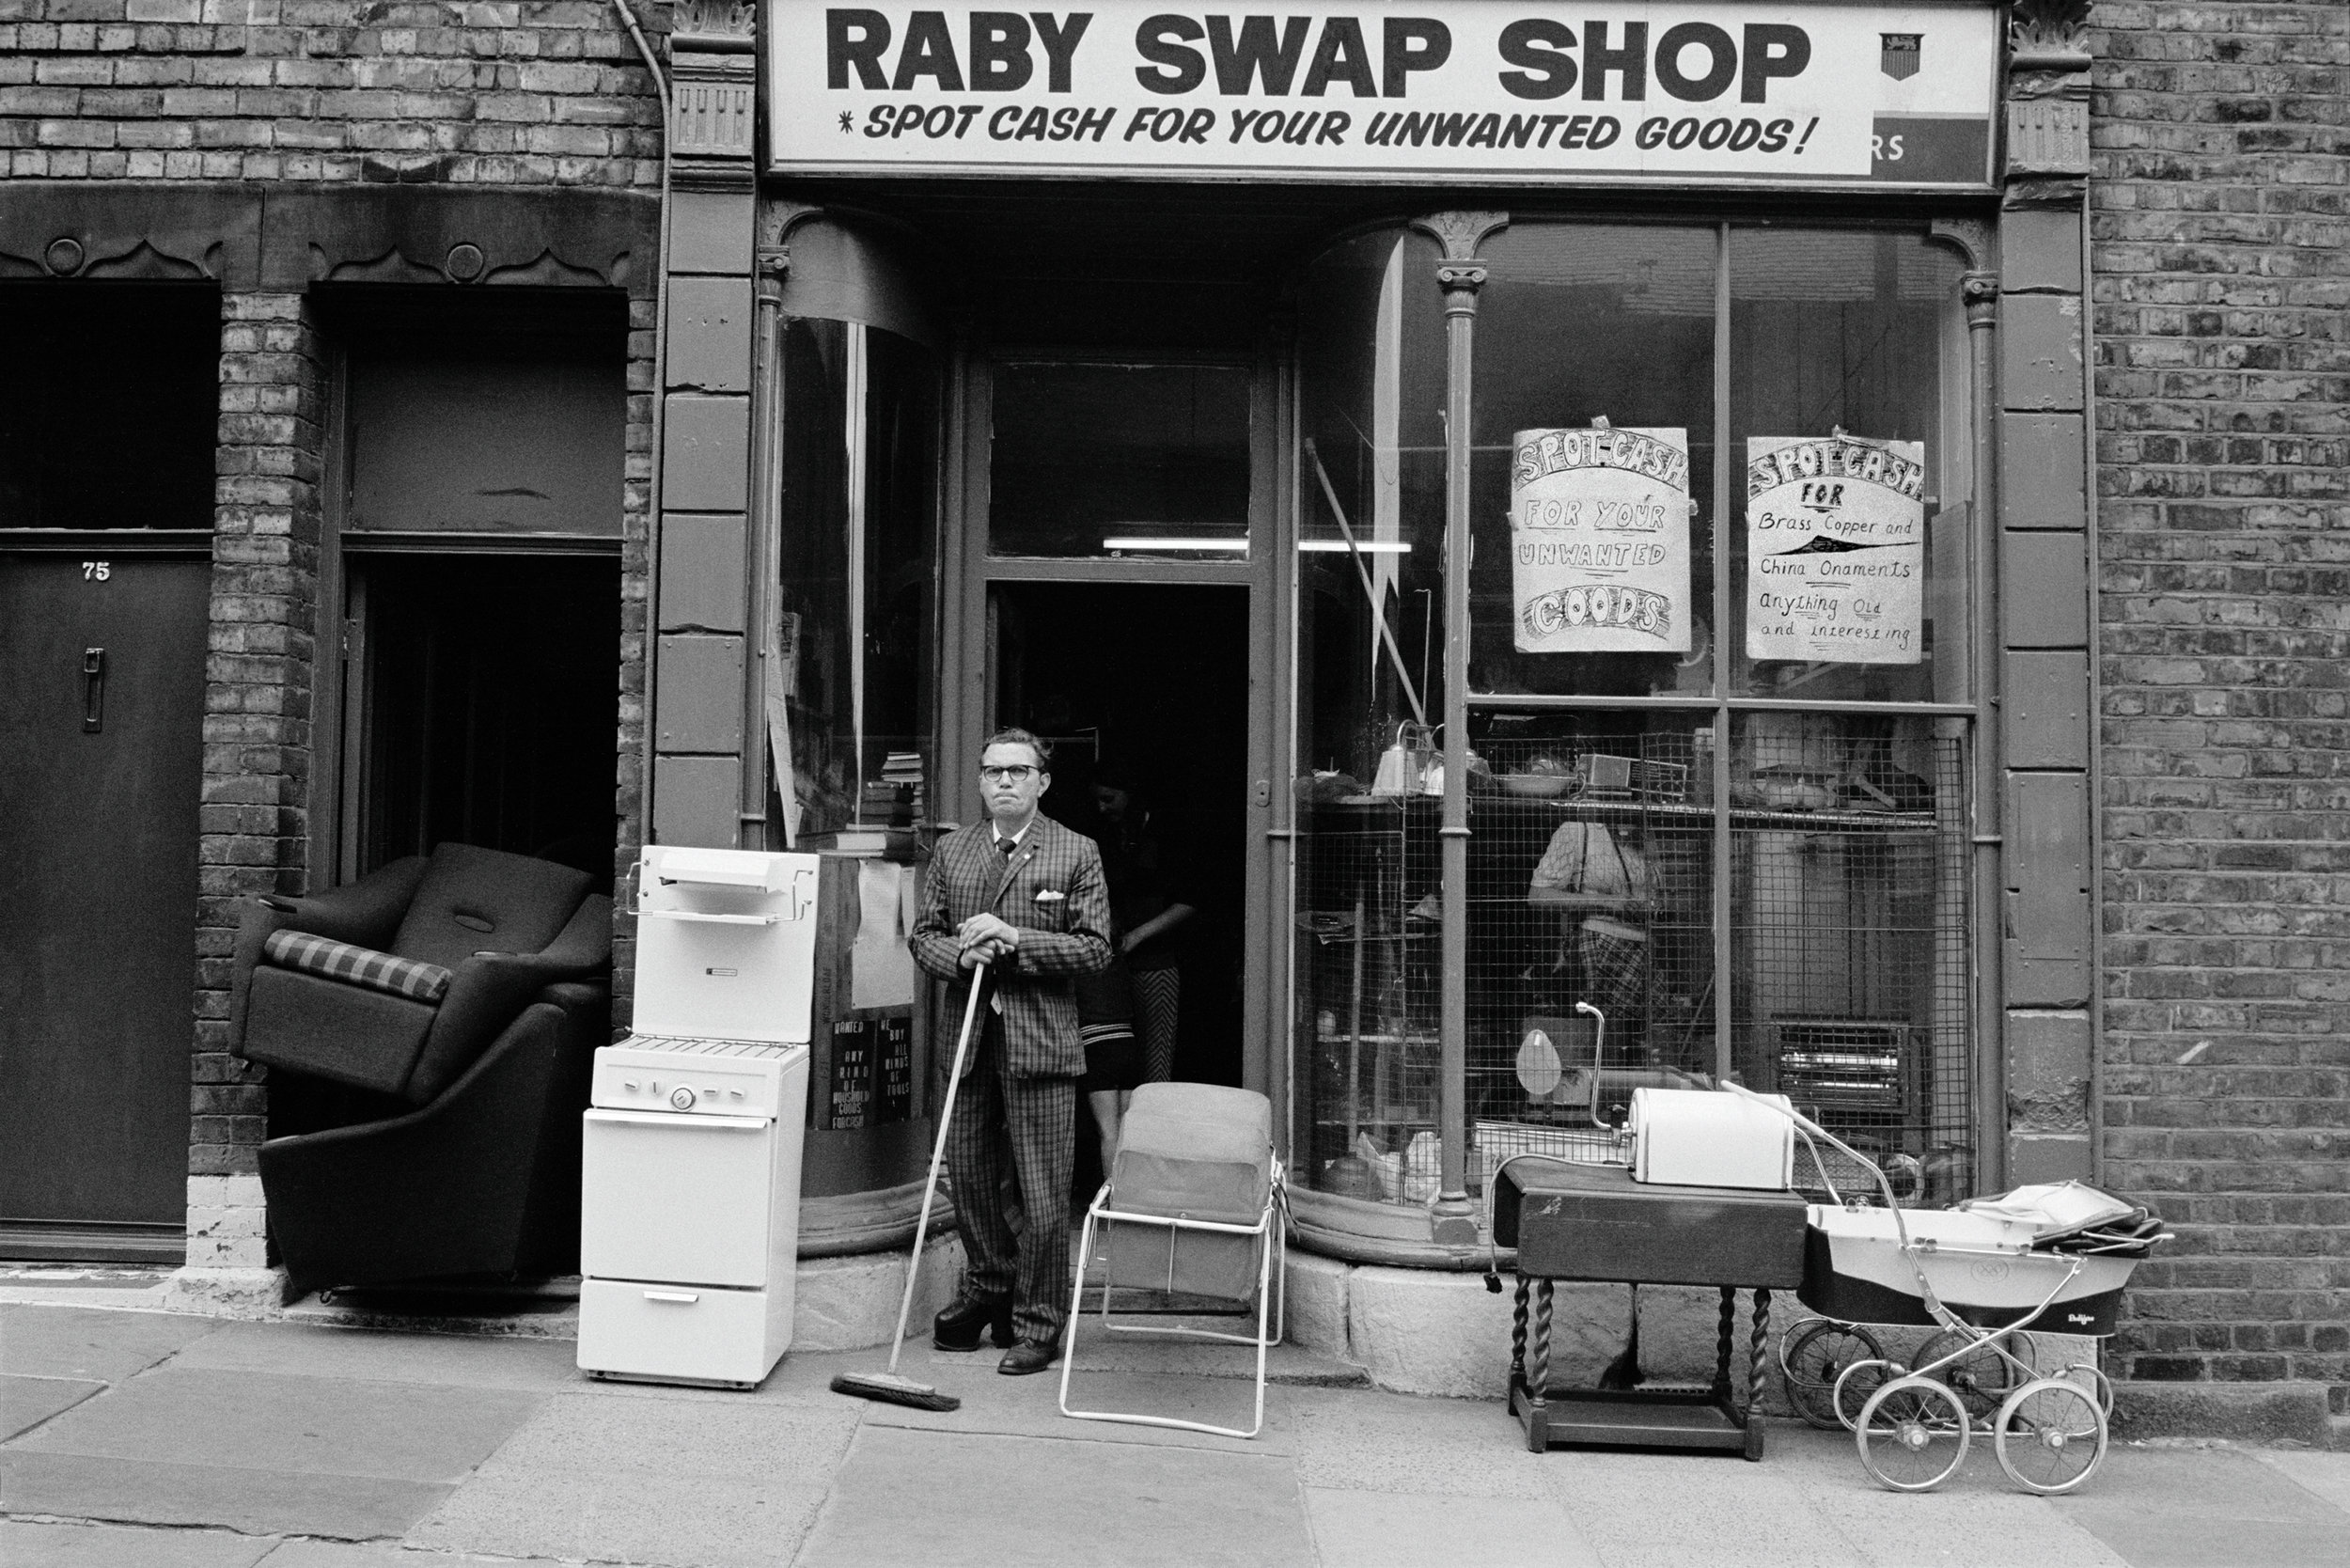 Isaac in Front of His Raby Swap Shop, 1974